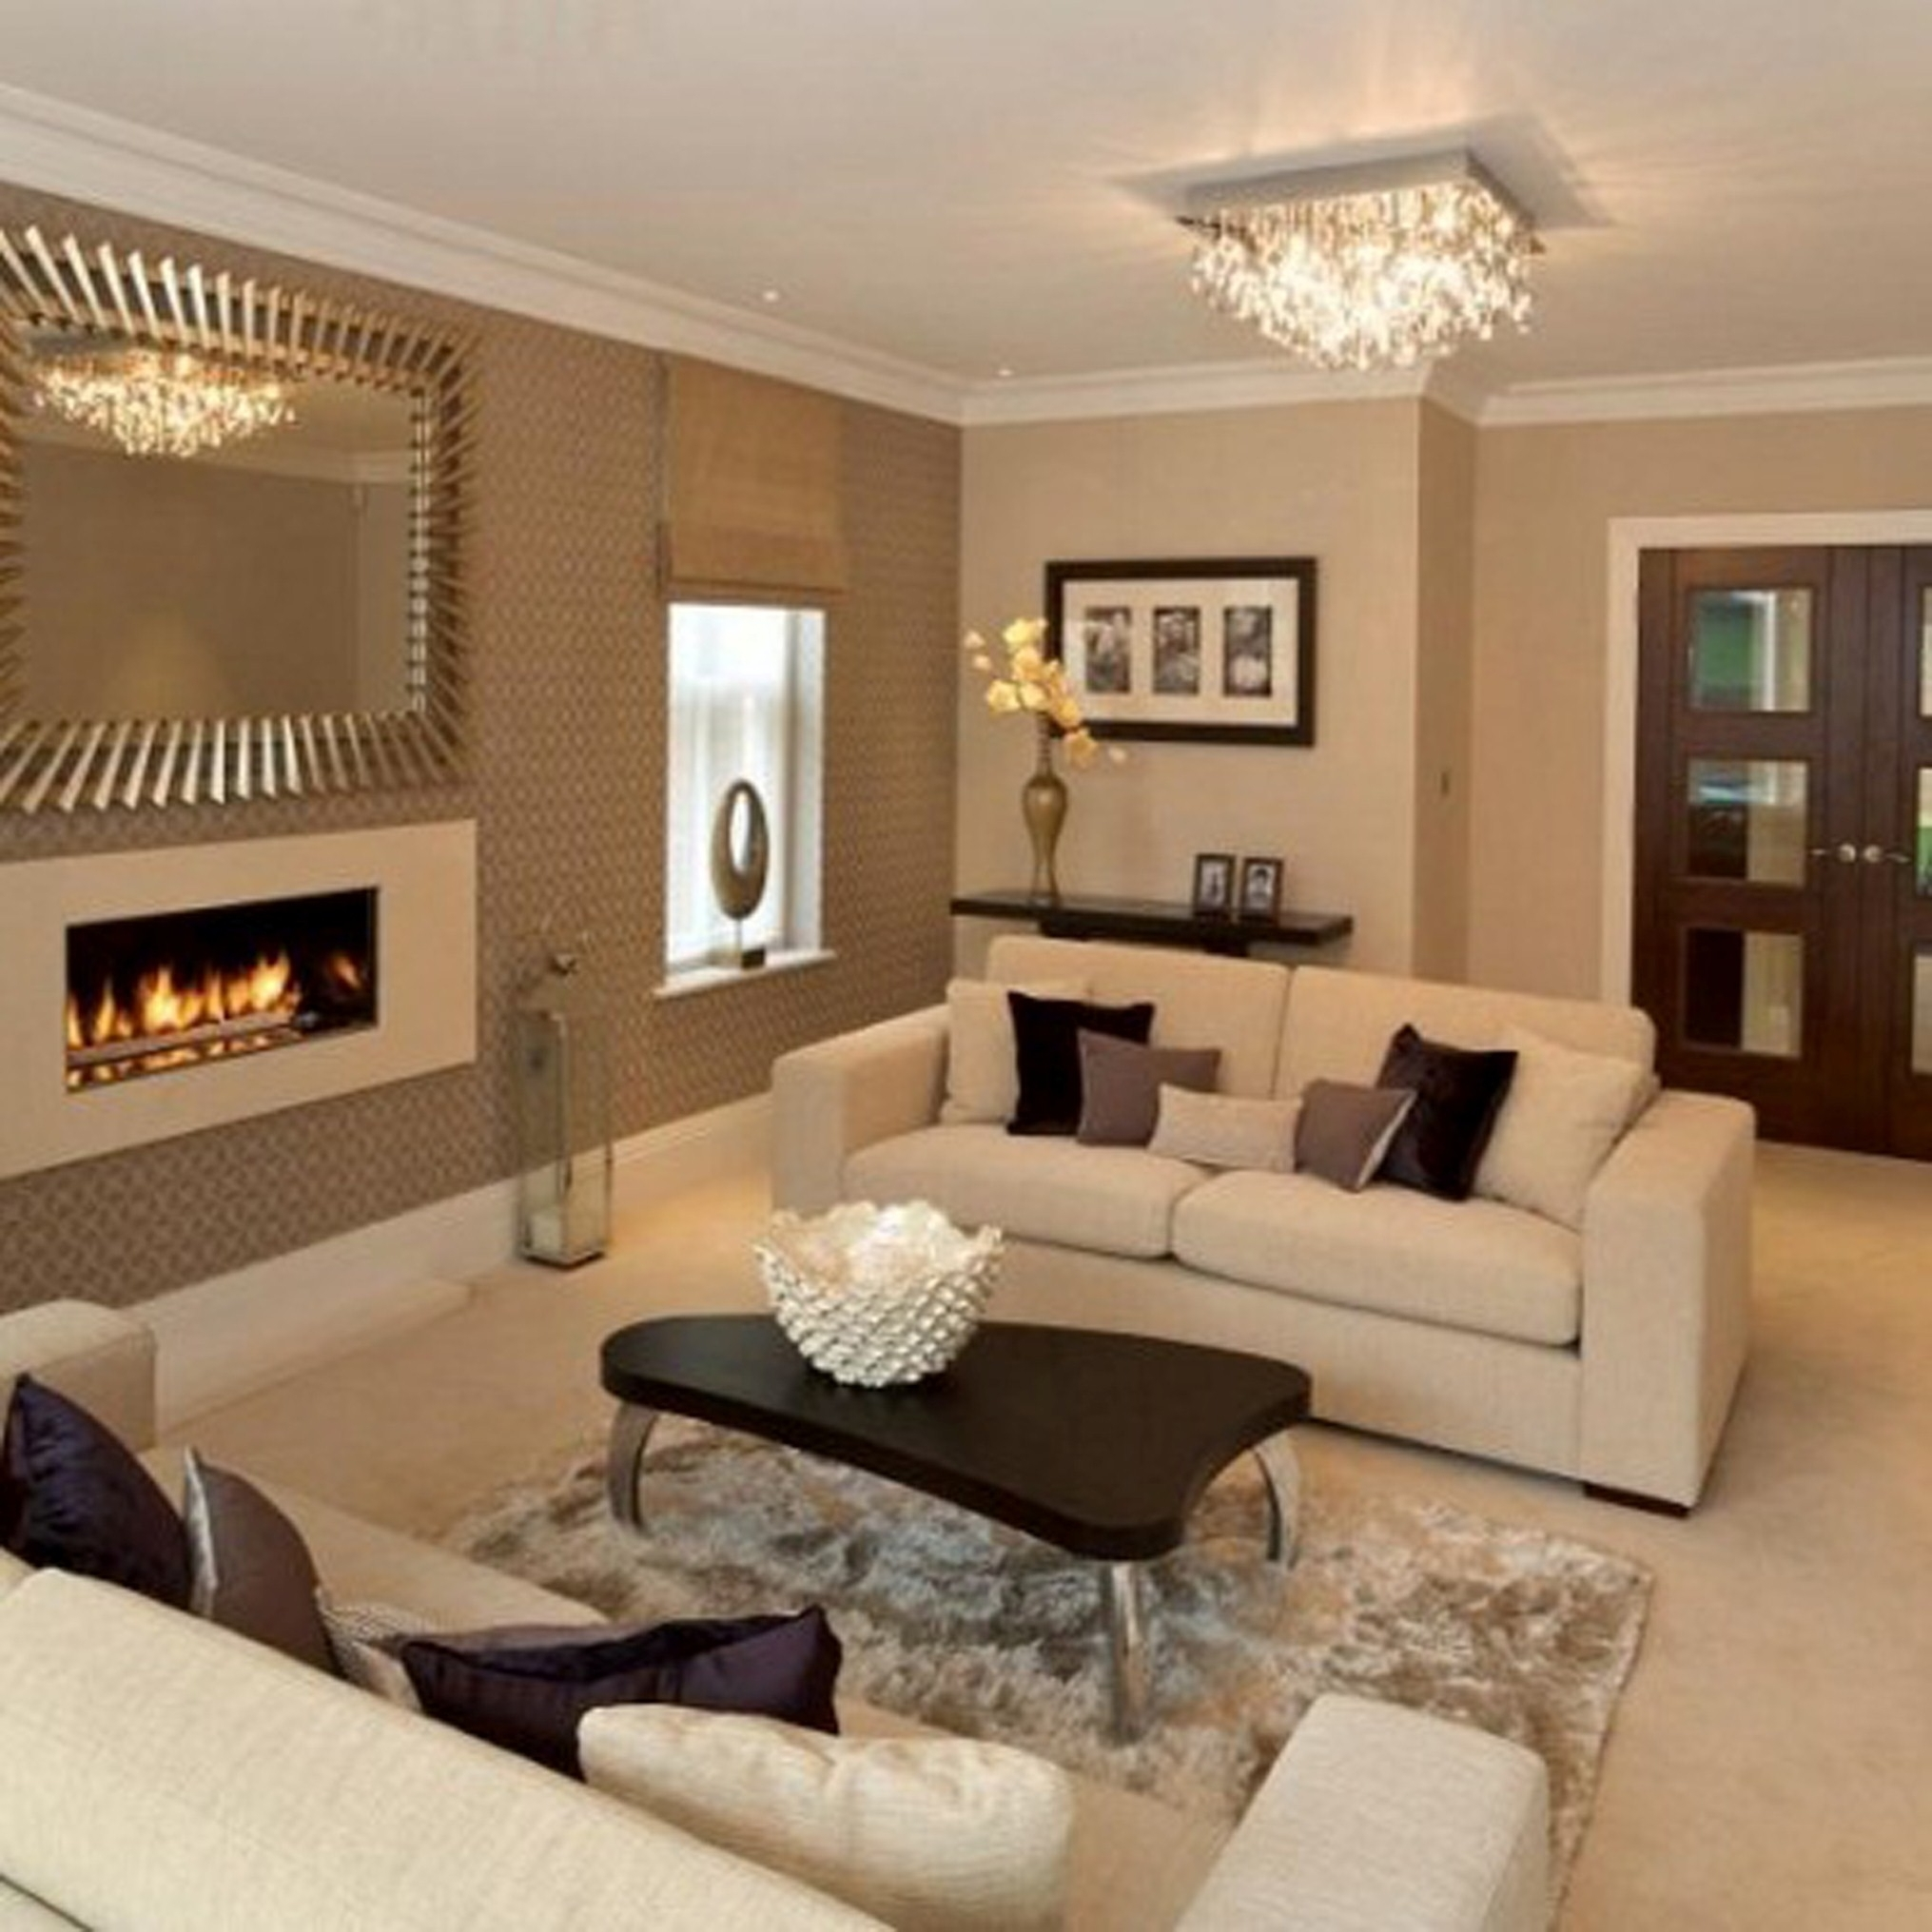 Modern Living Room With Exquisite Wall Fireplace Plus Pretty Unique Coffee Table Curve Design (Image 26 of 30)